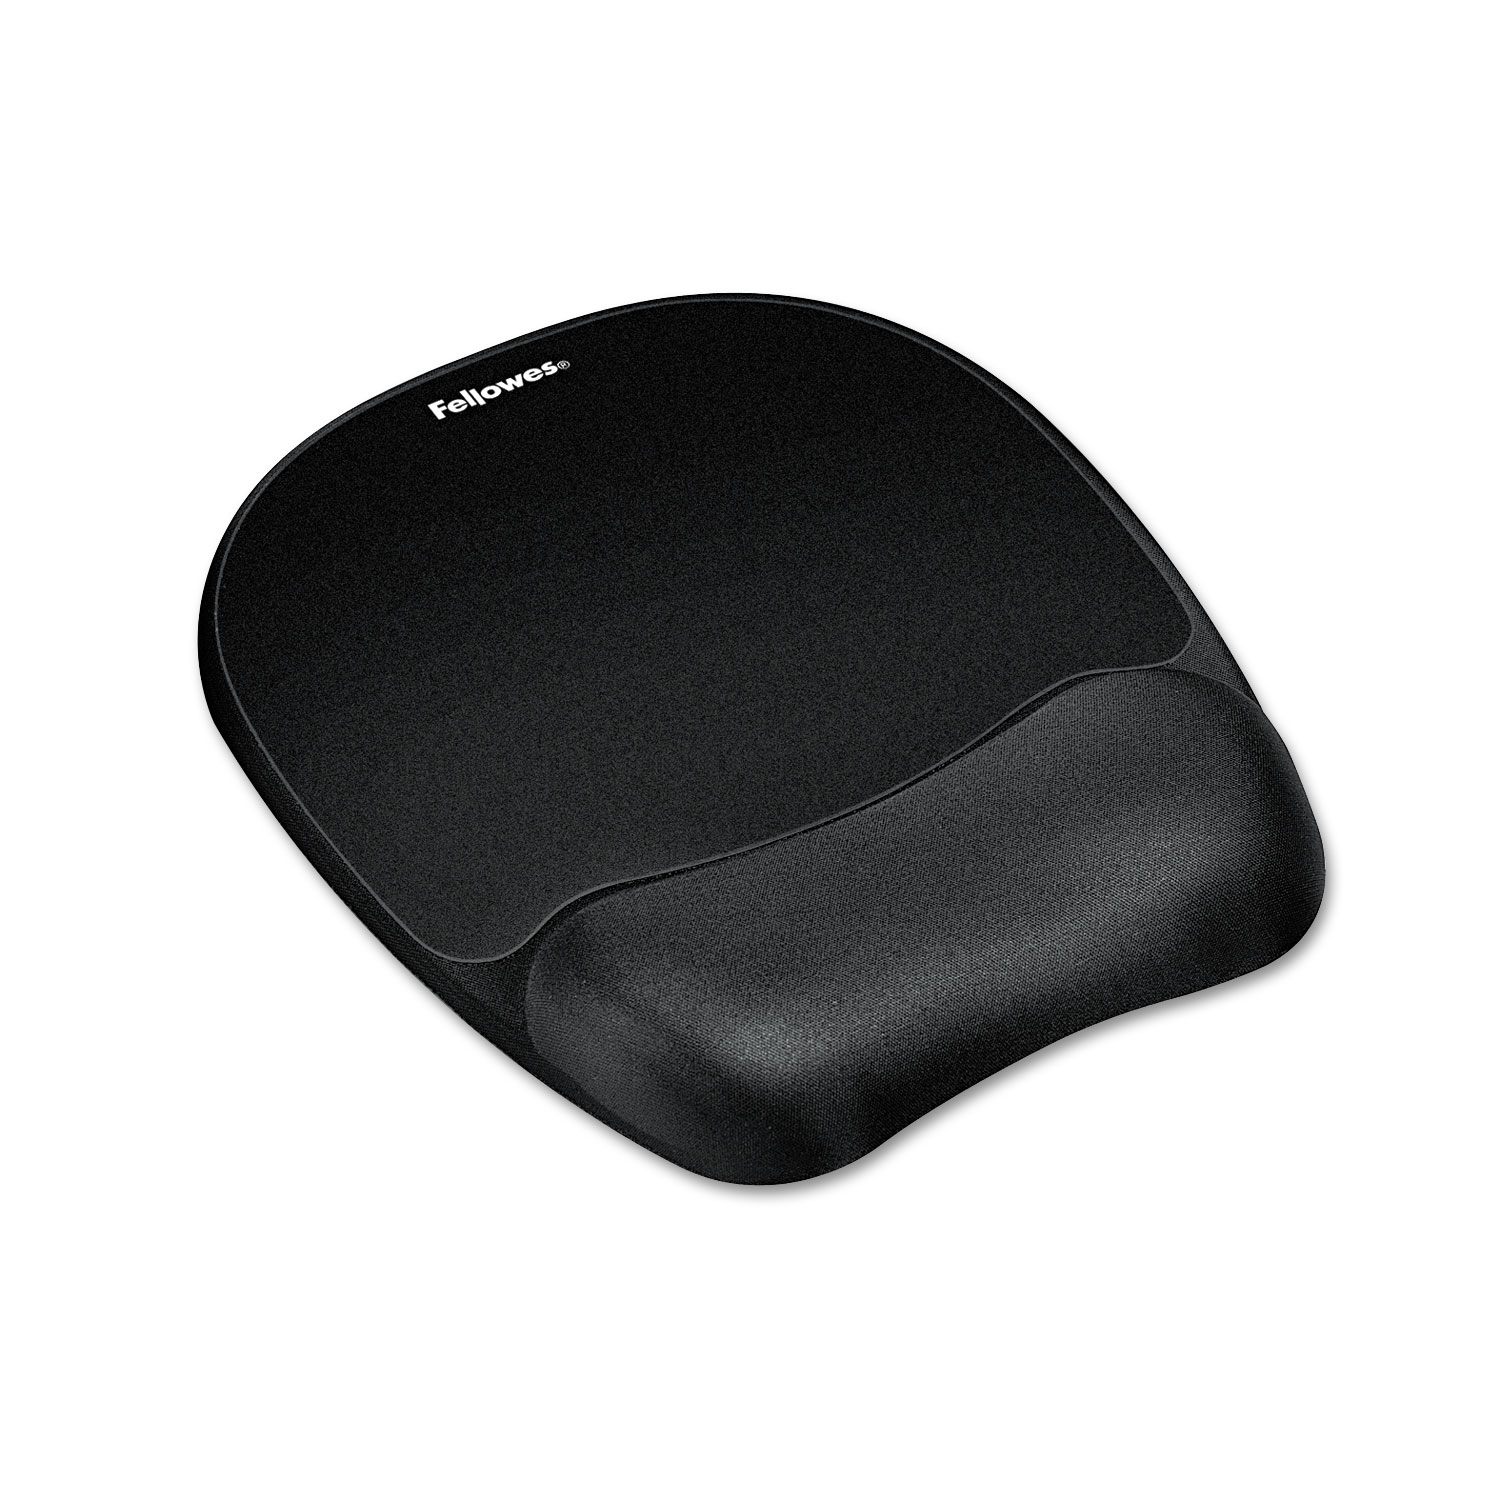 Mouse Pad w/Wrist Rest, Nonskid Back, 7 15/16 x 9 1/4, Black